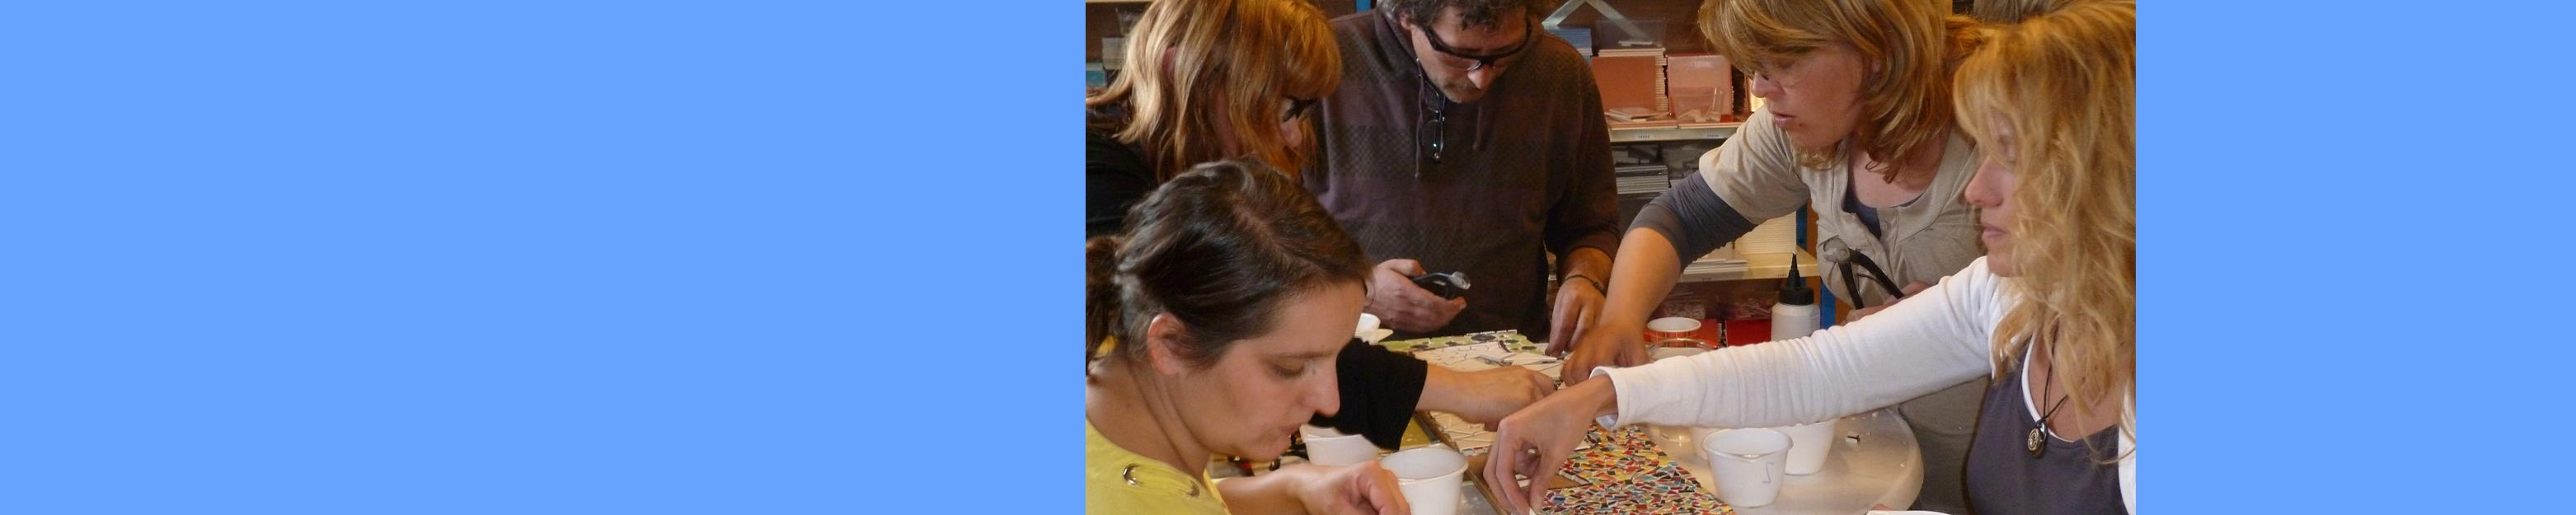 Workshop kombineren met High Tea, Lunchen, chinees buffet